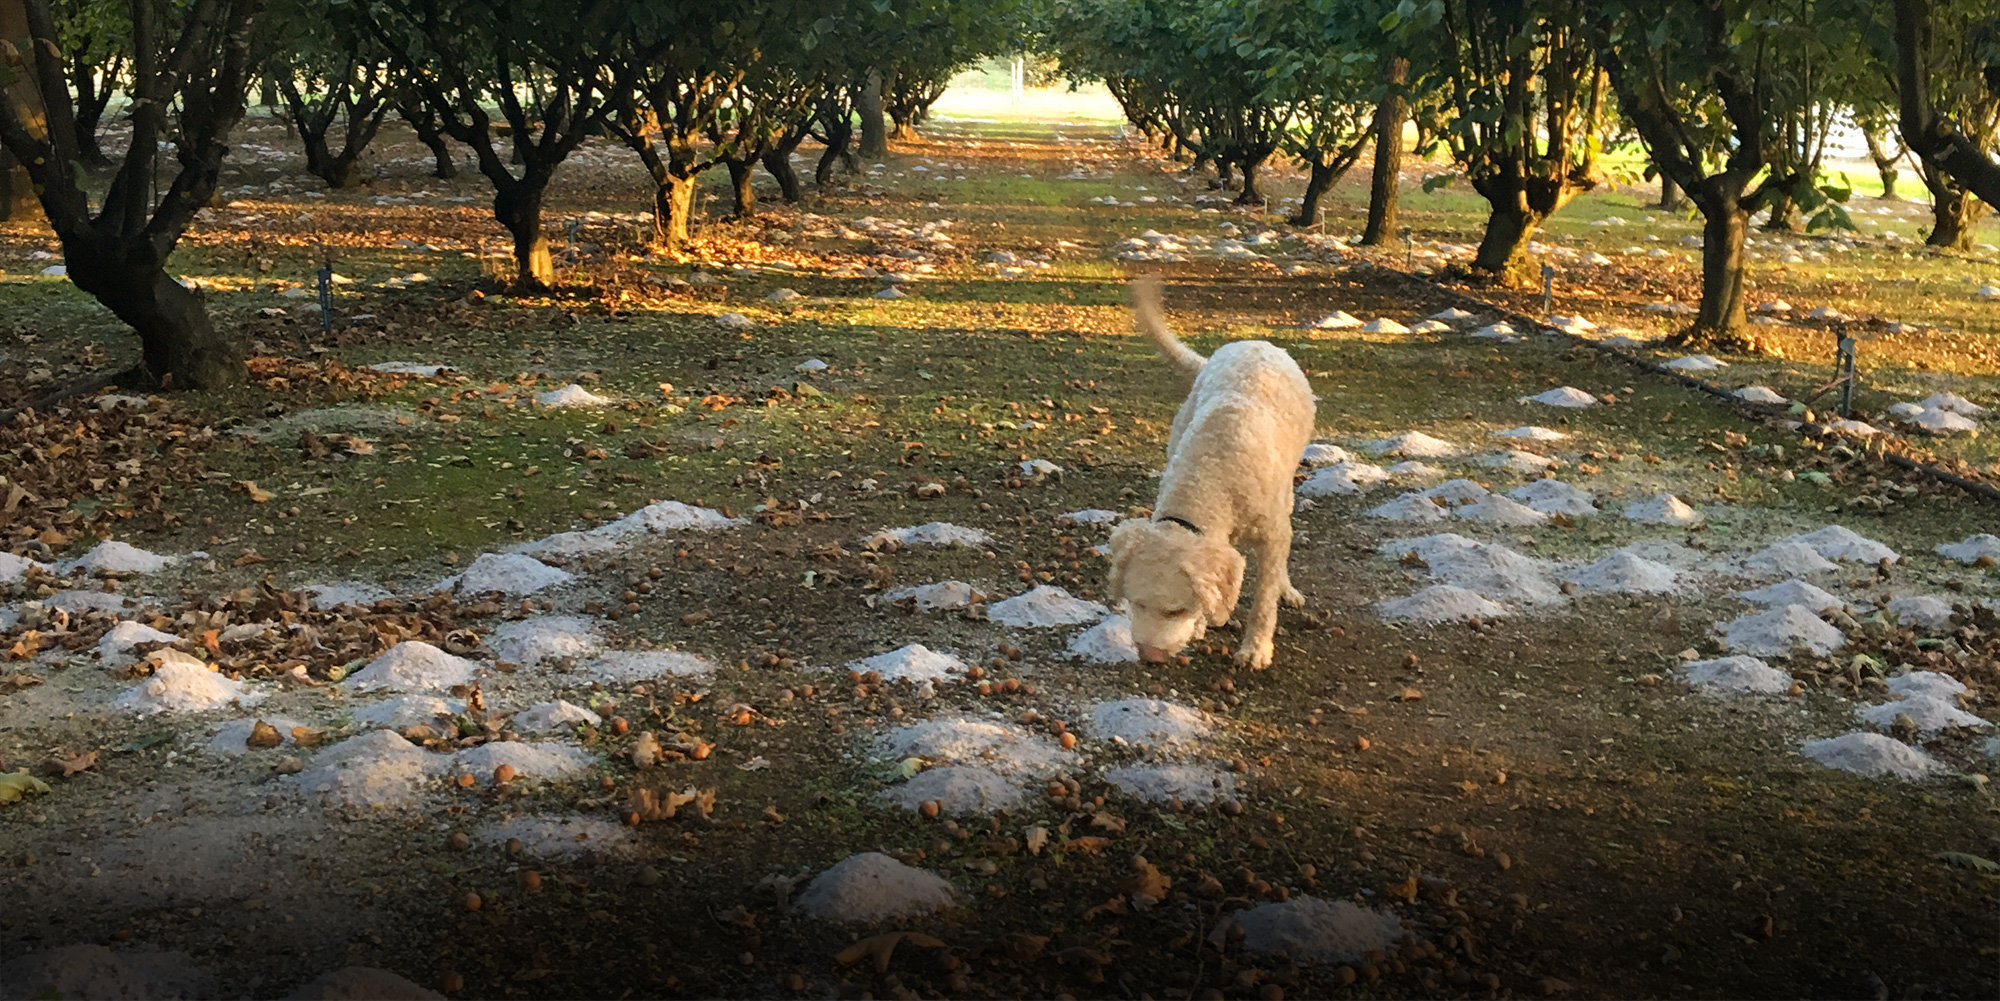 Millgrove truffle dog Solly in action